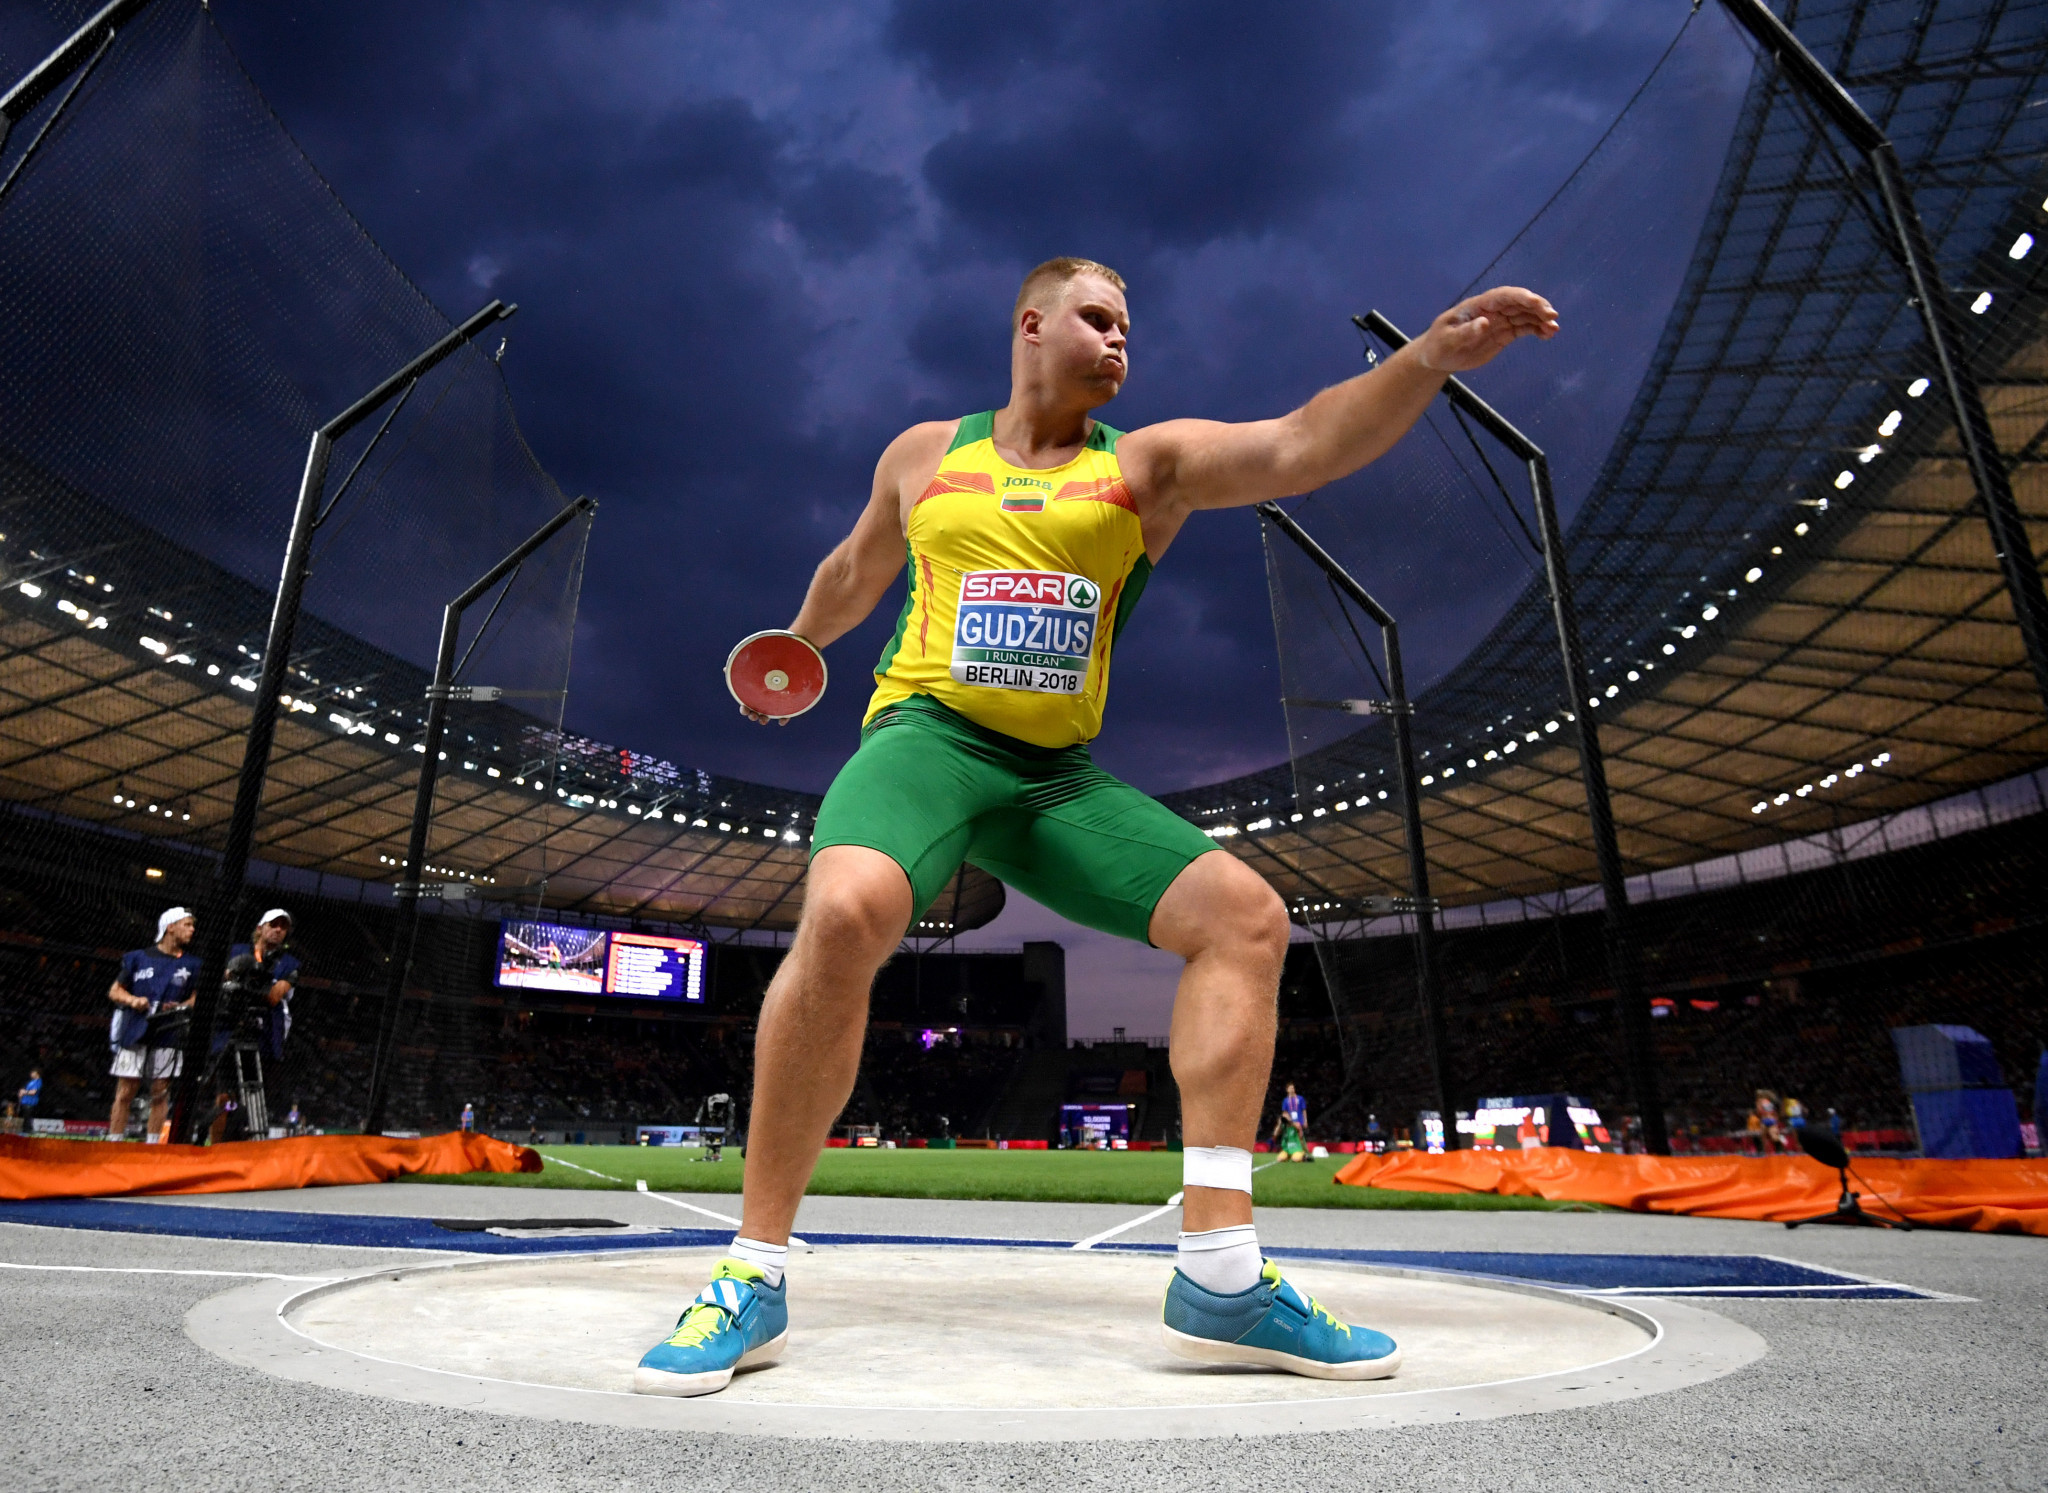 Lithuania's world discus champion Andrius Gudzius won the European title with his final throw ©Getty Images